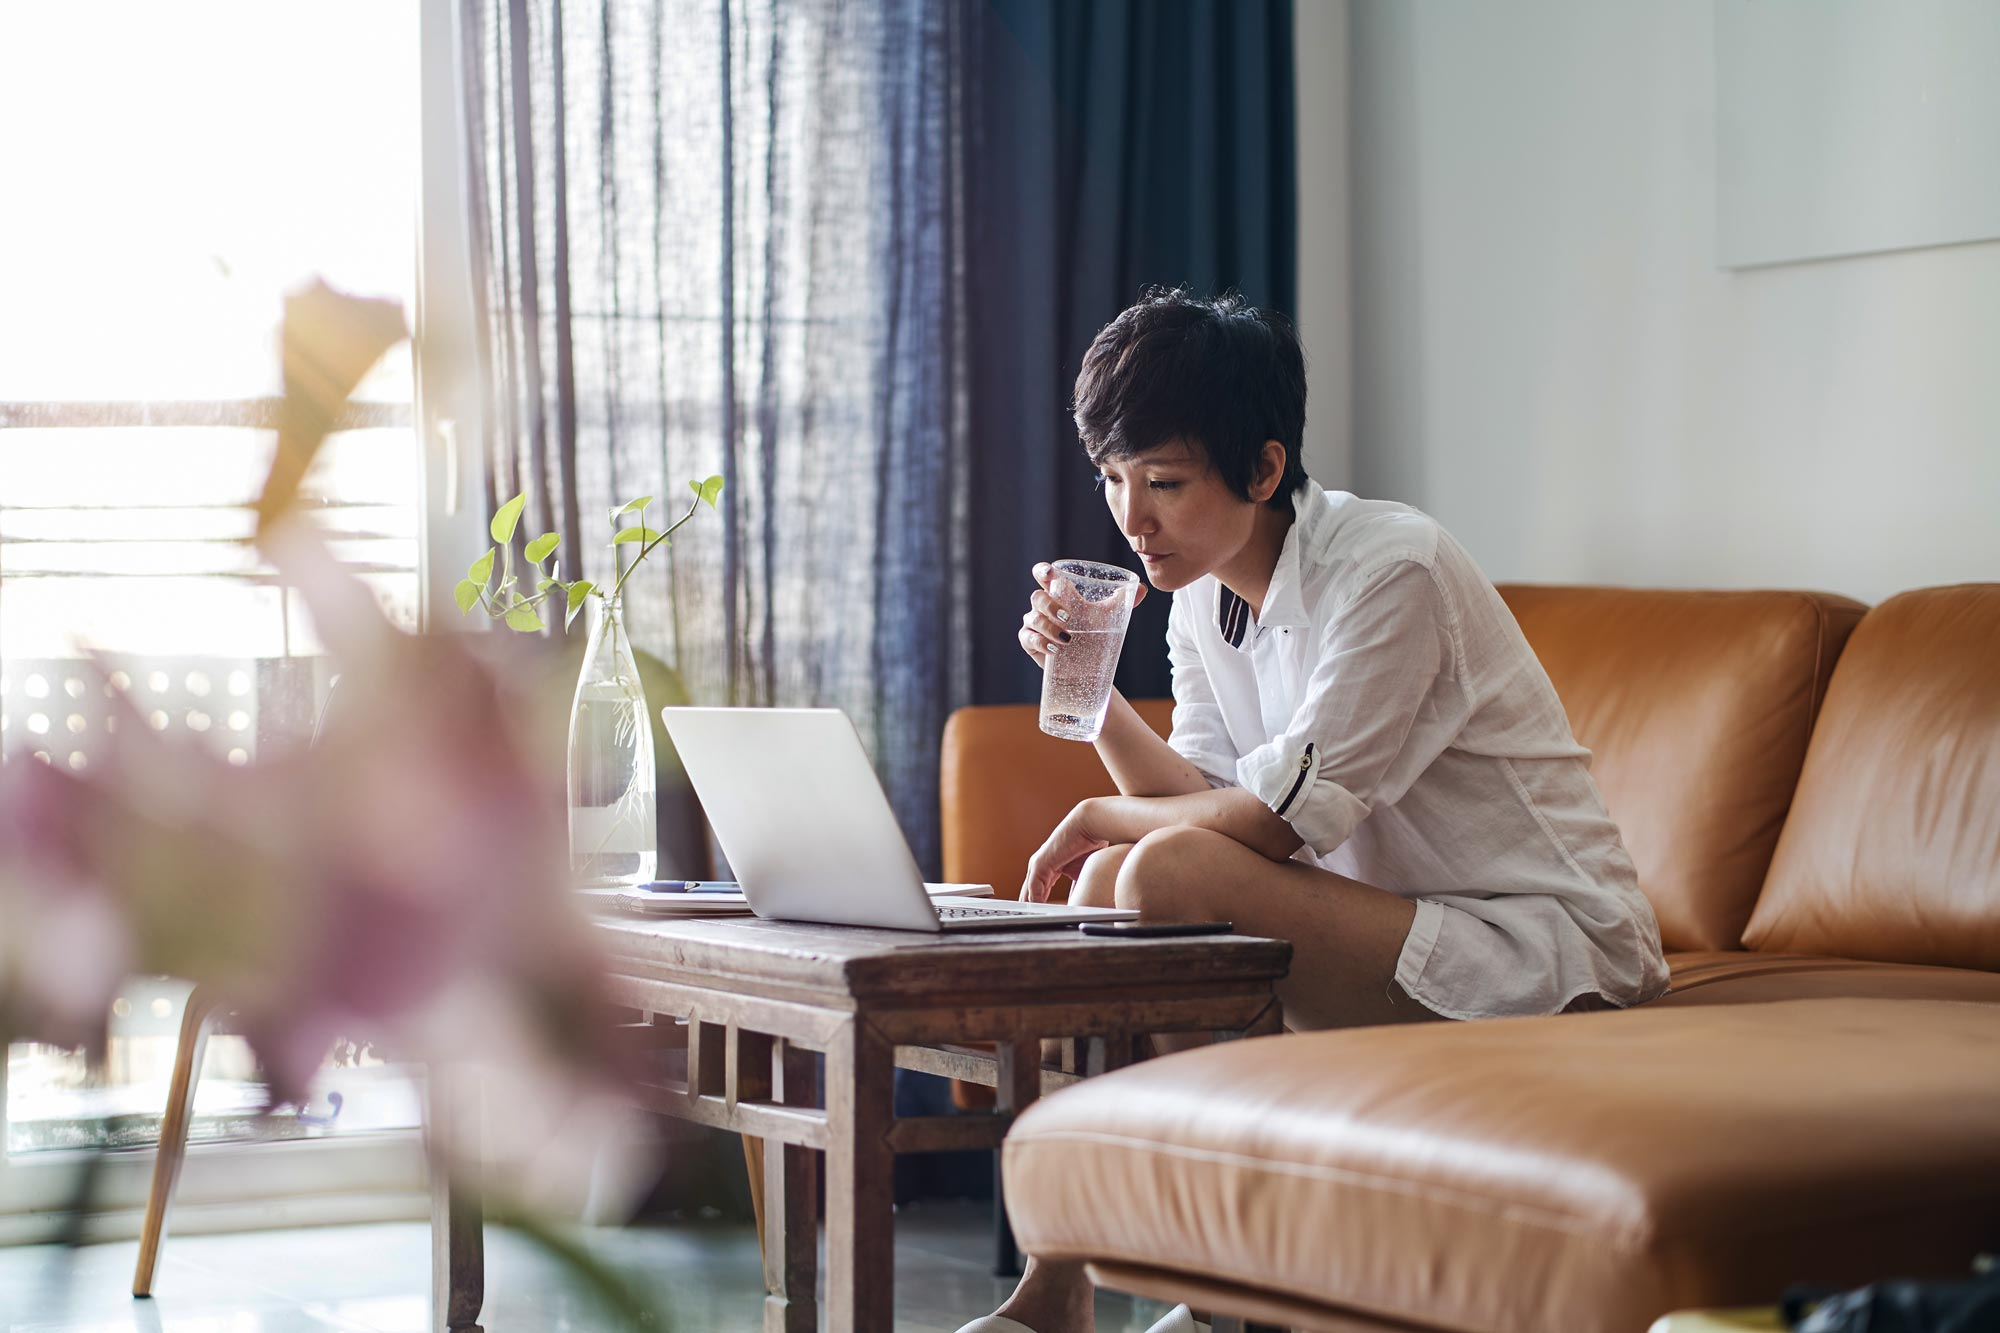 Telecommuting May Become Virginia's Biggest Demographic Trend This Decade